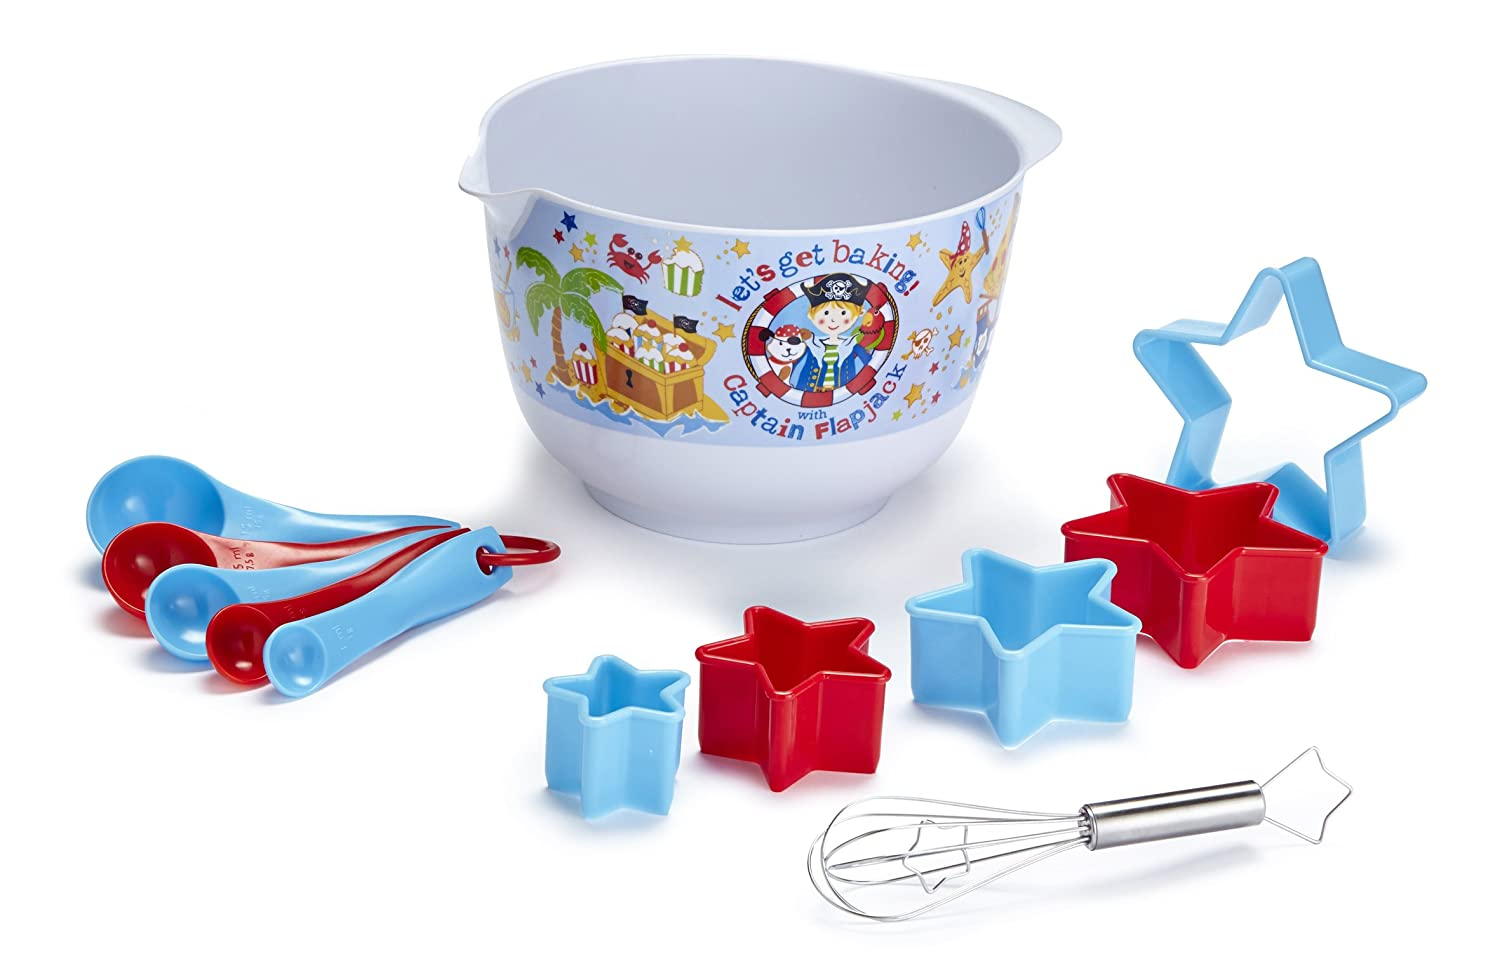 Cooksmart Kids 12-Piece Captain Flapjack Mixing Bowl Set 9052